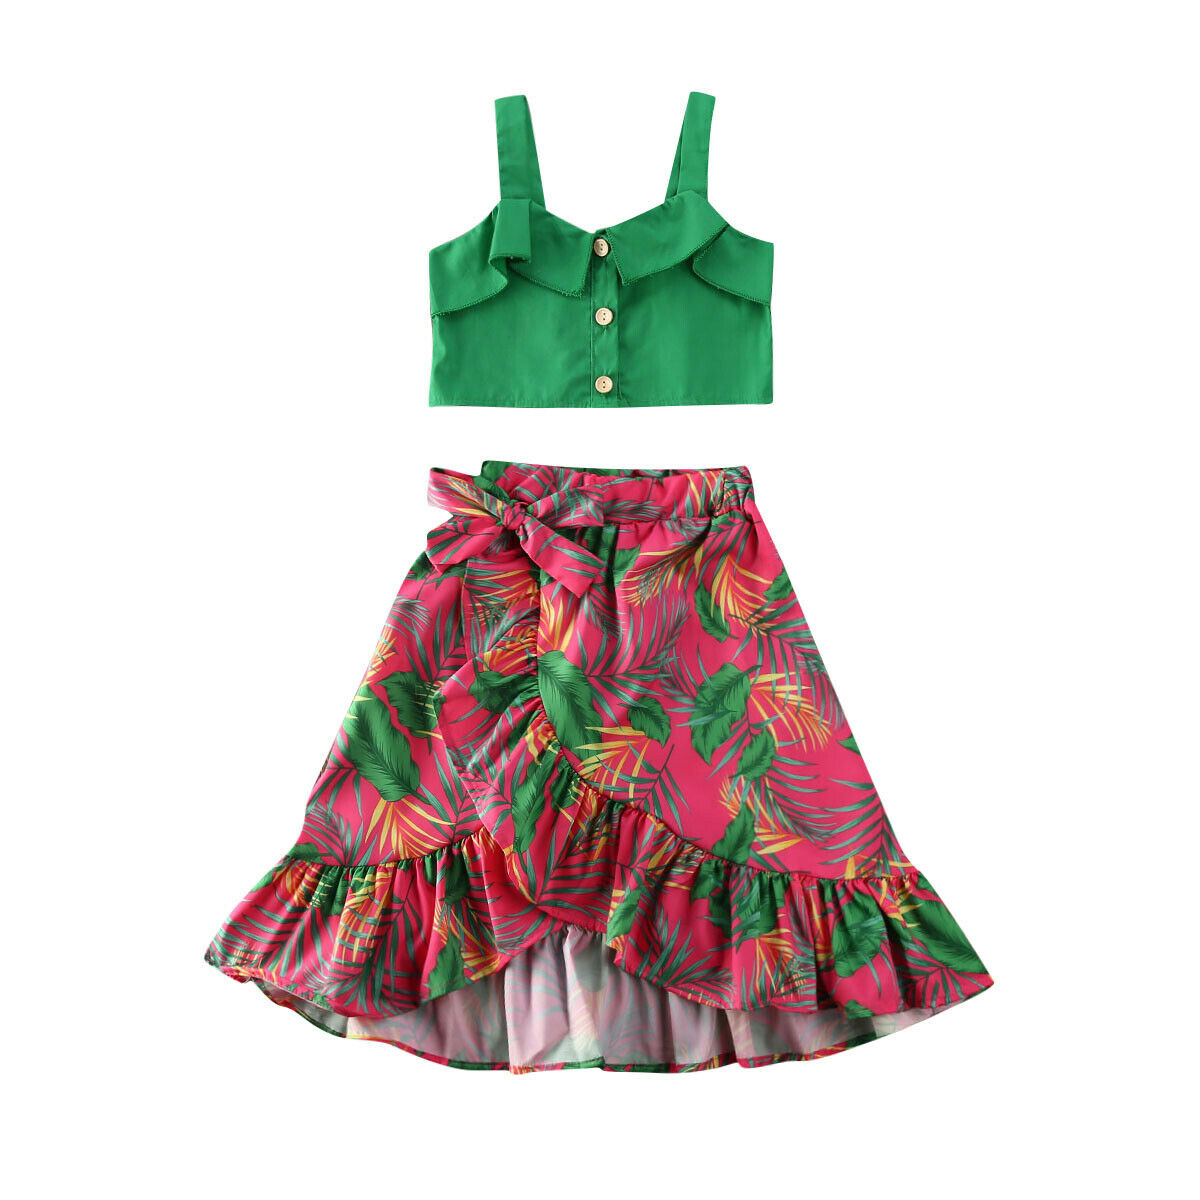 Fashion Kids Baby Girls Summer Clothes Vest Ruffle Top Bowknot Skirt Shorts Floral Outfits Sunsuit